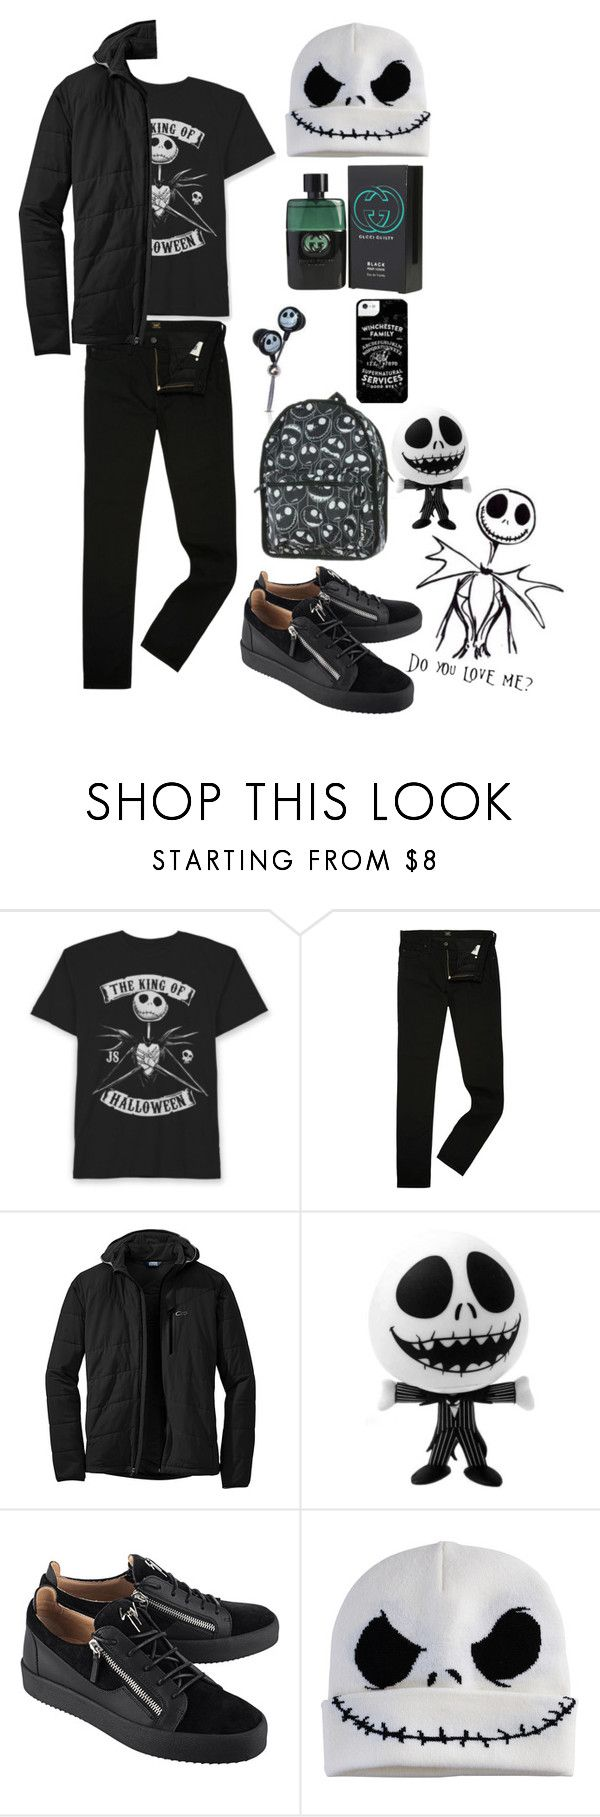 """""""Sans titre #946"""" by kokoxpops ❤ liked on Polyvore featuring Lee, Outdoor Research, Disney, Giuseppe Zanotti, Gucci, men's fashion and menswear"""